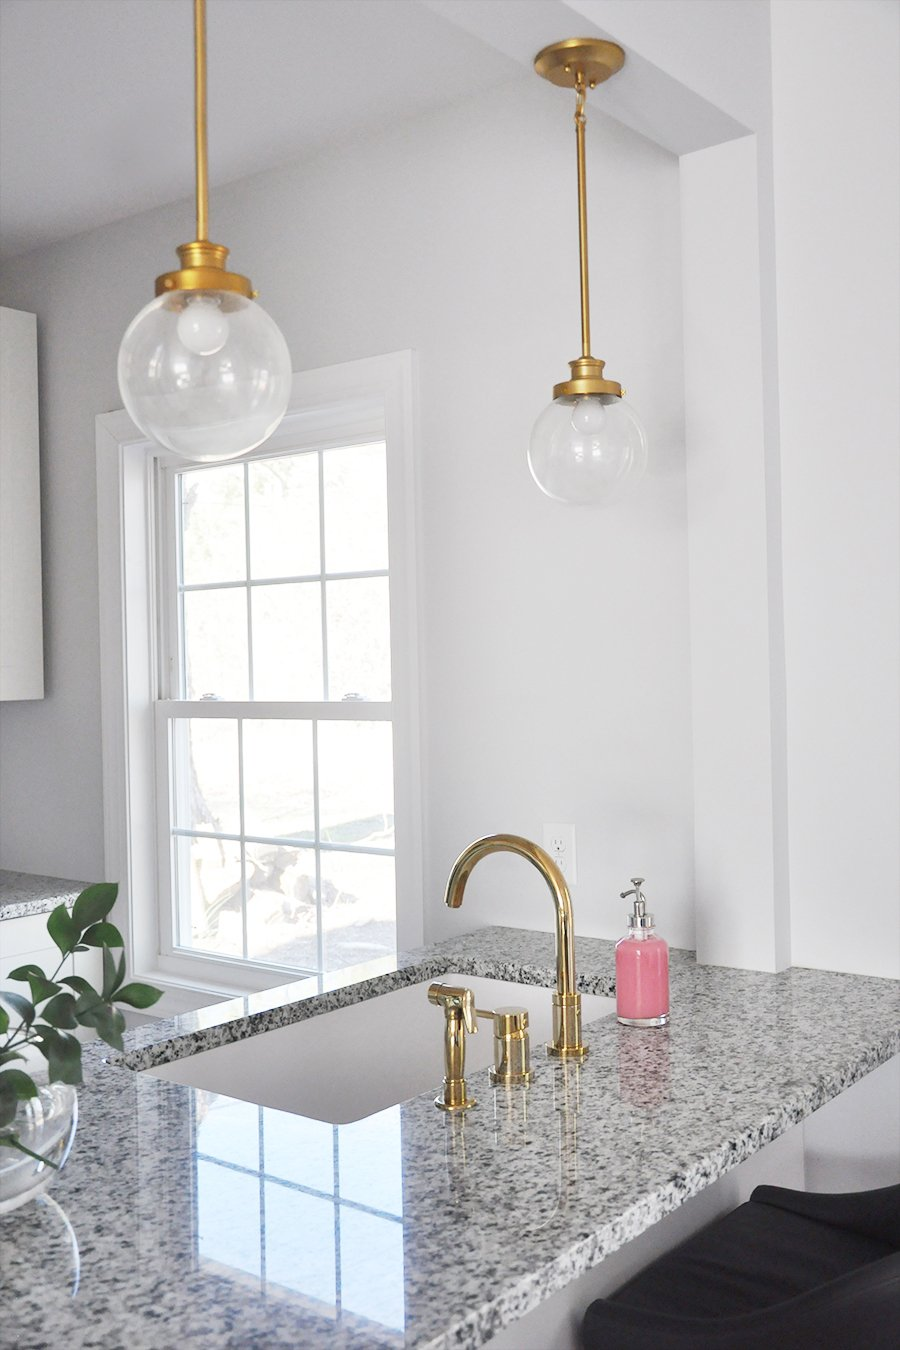 White Undermount Kitchen Sink the case for white, undermount kitchen sinks